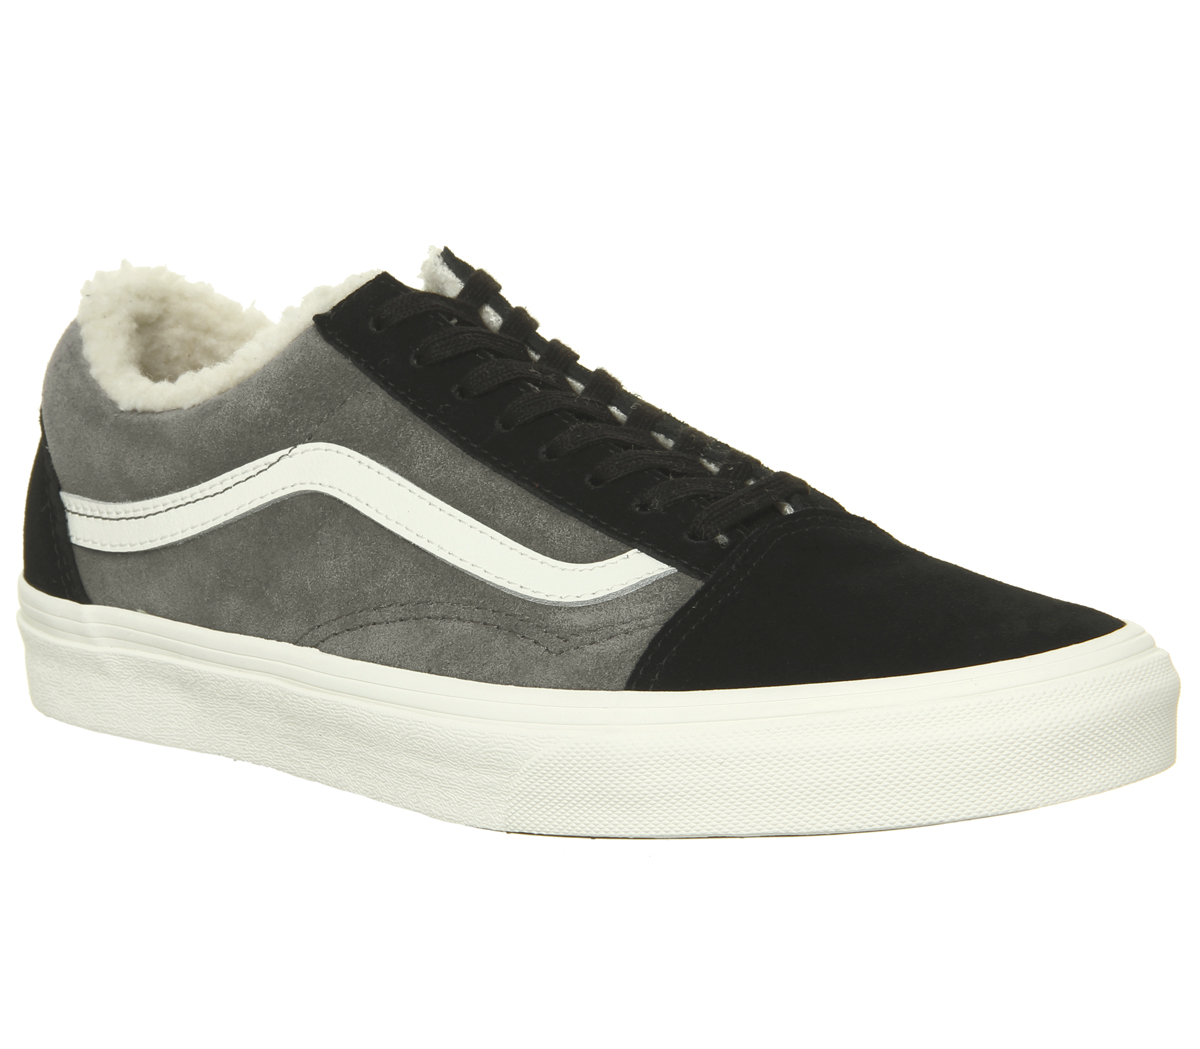 eb99e1037201b0 Sentinel Mens Vans Old Skool Trainers Black Pewter Sherpa Trainers Shoes